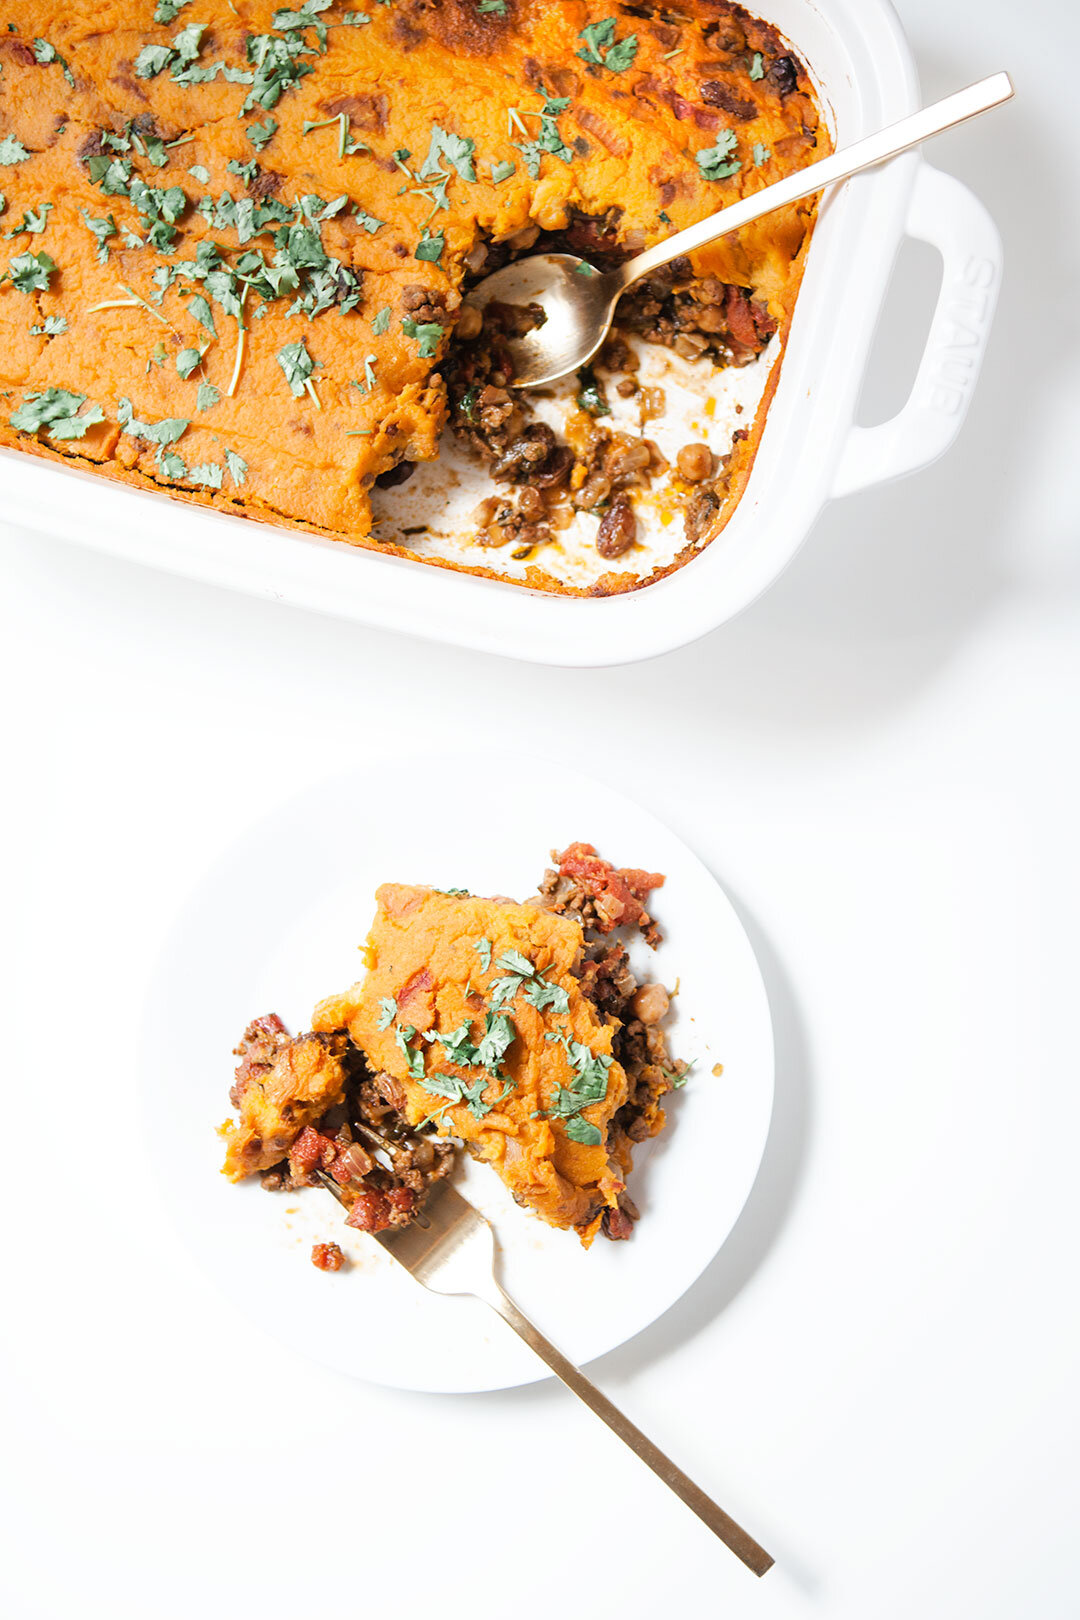 MOROCCAN SHEPHERD'S PIE with SWEET POTATO | A healthy Moroccan shepherd's pie with a creamy sweet potato mash, two ways: vegan with chickpeas or non-vegan with lamb or beef. Both full of flavor, gluten-free, dairy-free, and paleo. | LOVELEAF CO. #shepherdspie #paleo #shepherdspierecipe #easy #glutenfree #sweetpotato #moroccan